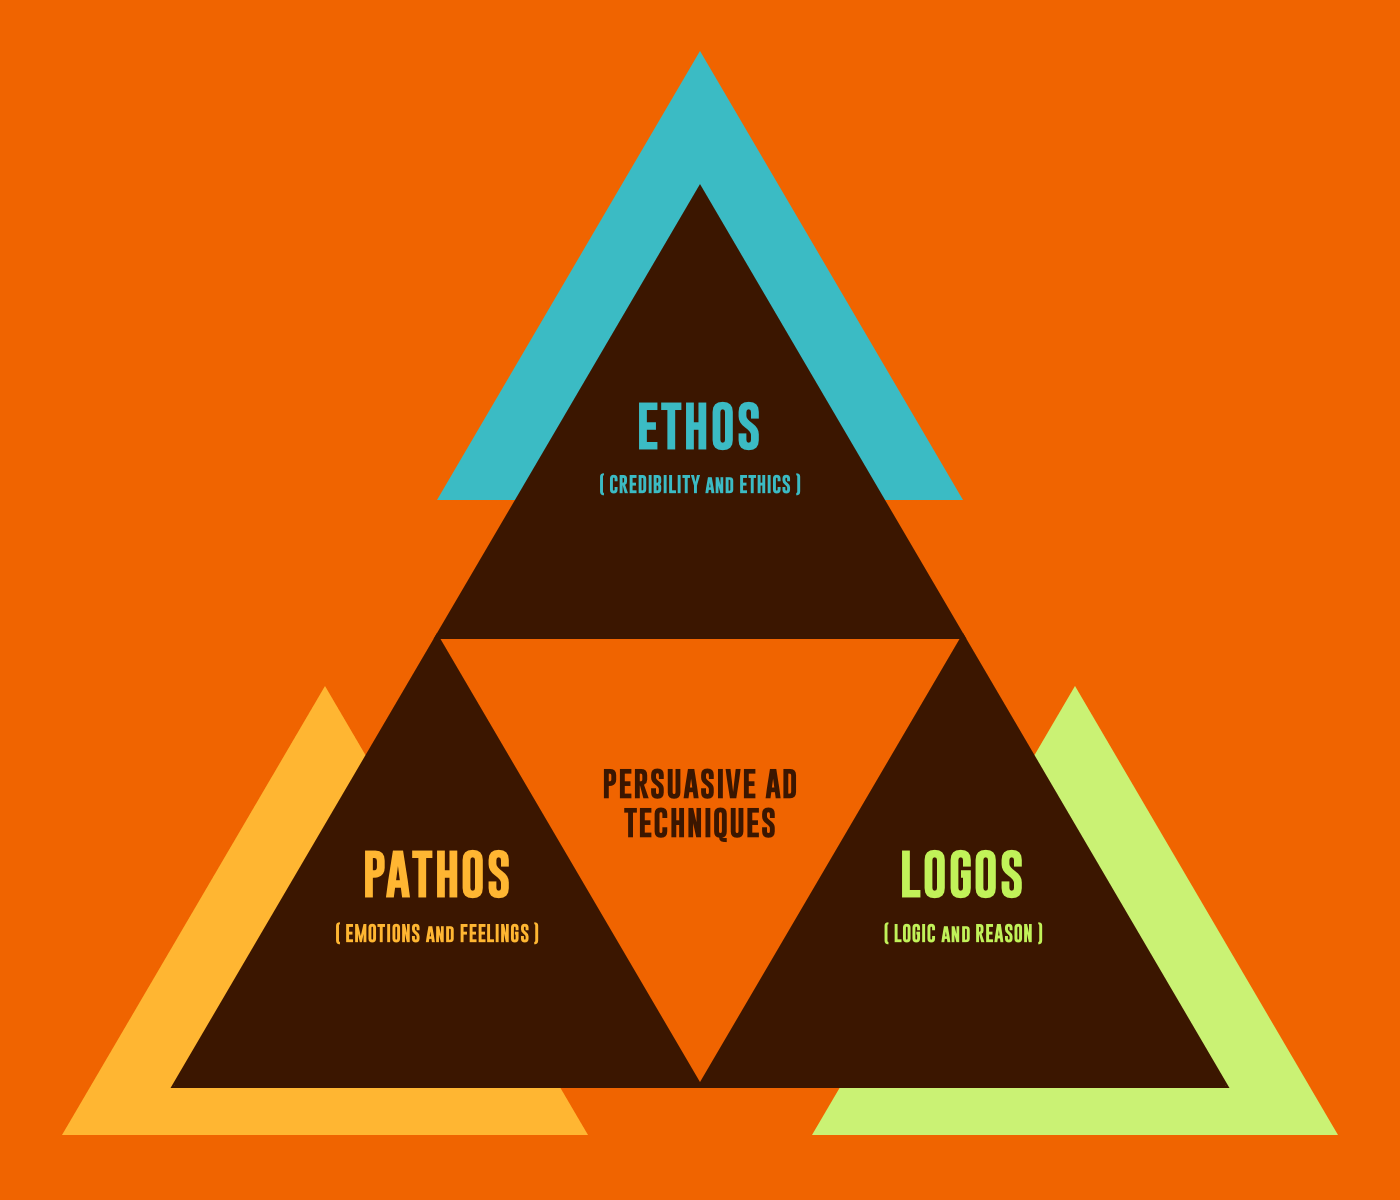 How to Make a Commercial by Mastering Persuasive Ads - Logos Ethos Pathos Rhetorical Triangle.